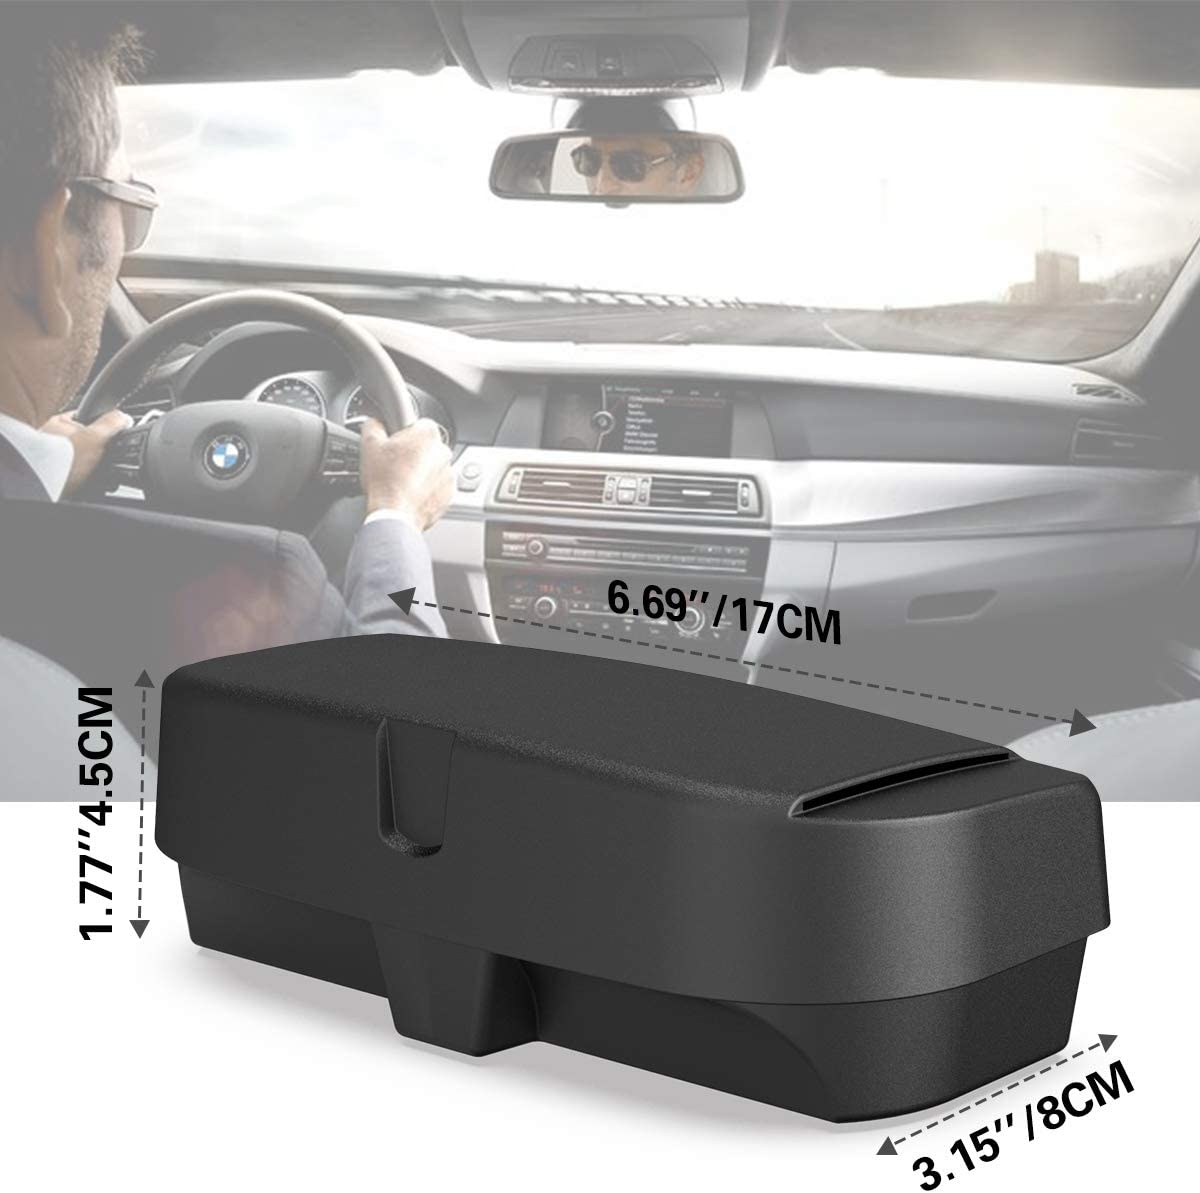 MoKo Car Glasses Case Sunglasses Box Visor Accessories Universial Glasses Organiser for Car Sun Visor Sunglasses Holder ABS Case Dustproof Storage Organizer Mount with Ticket Card Clip Gray